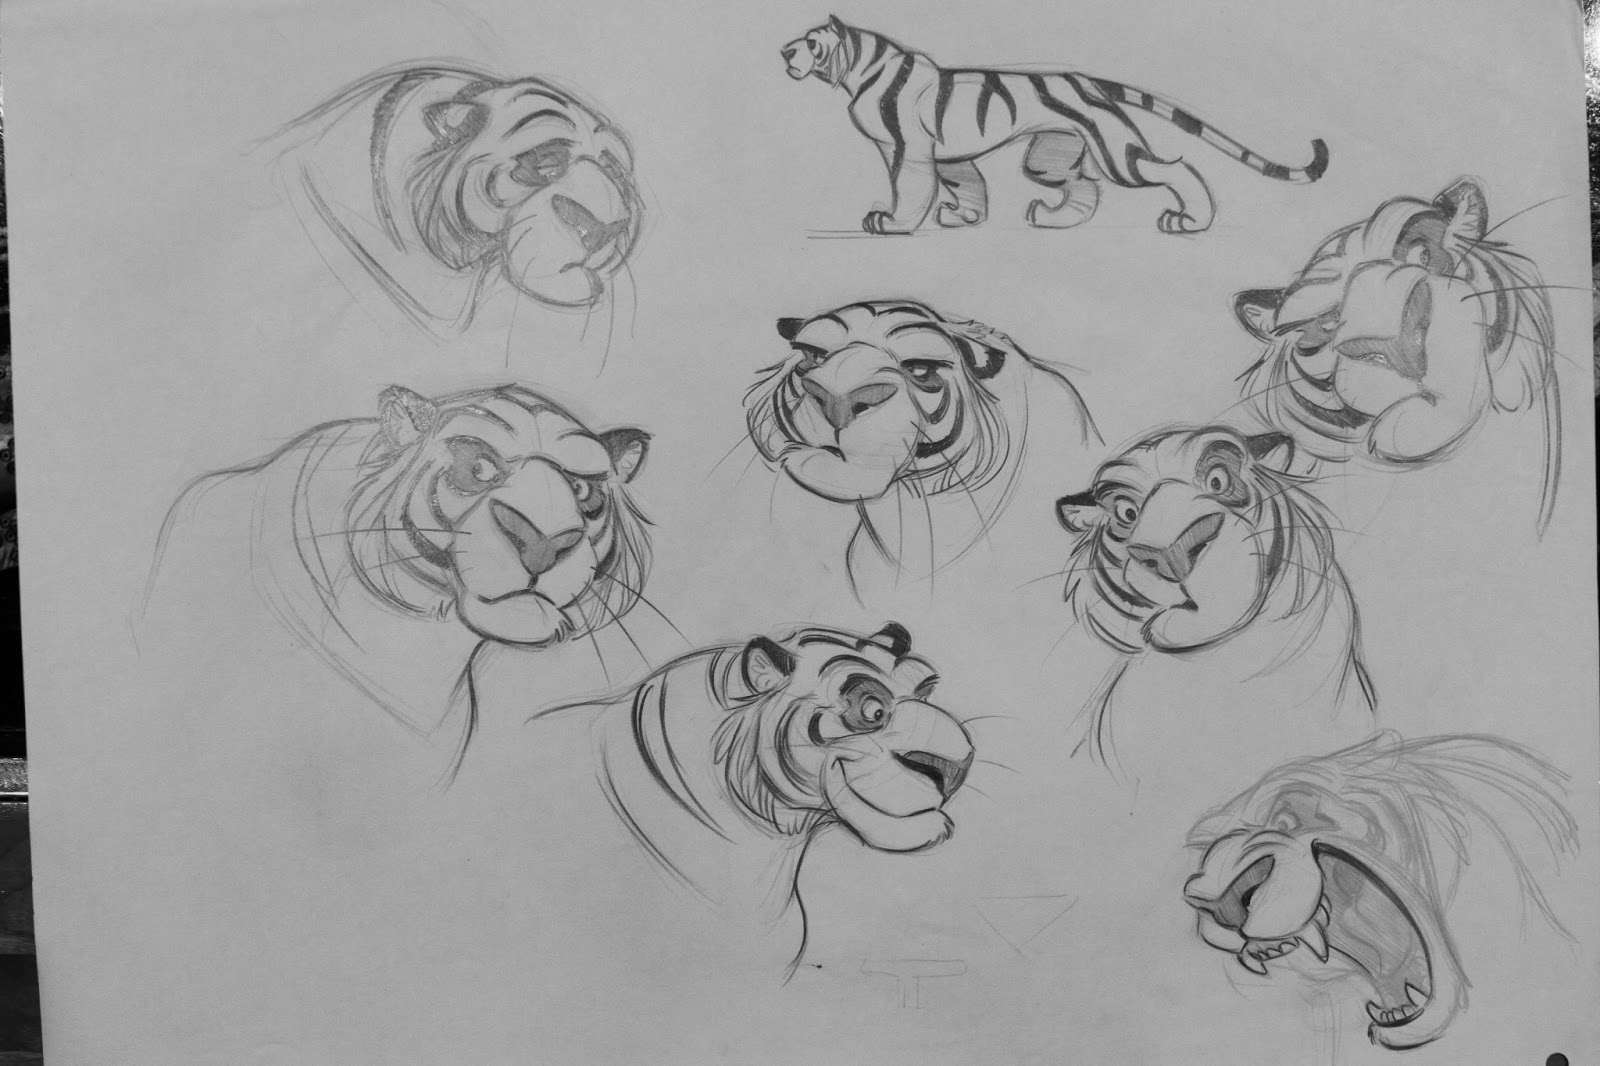 Old Animation Design Drawings In Packing My Home Ive  e Across Some Old Animation Design Drawings Ive Done Over The Years These Particular Drawings Are From Aladdin The Lion King Mulan And on drawing process